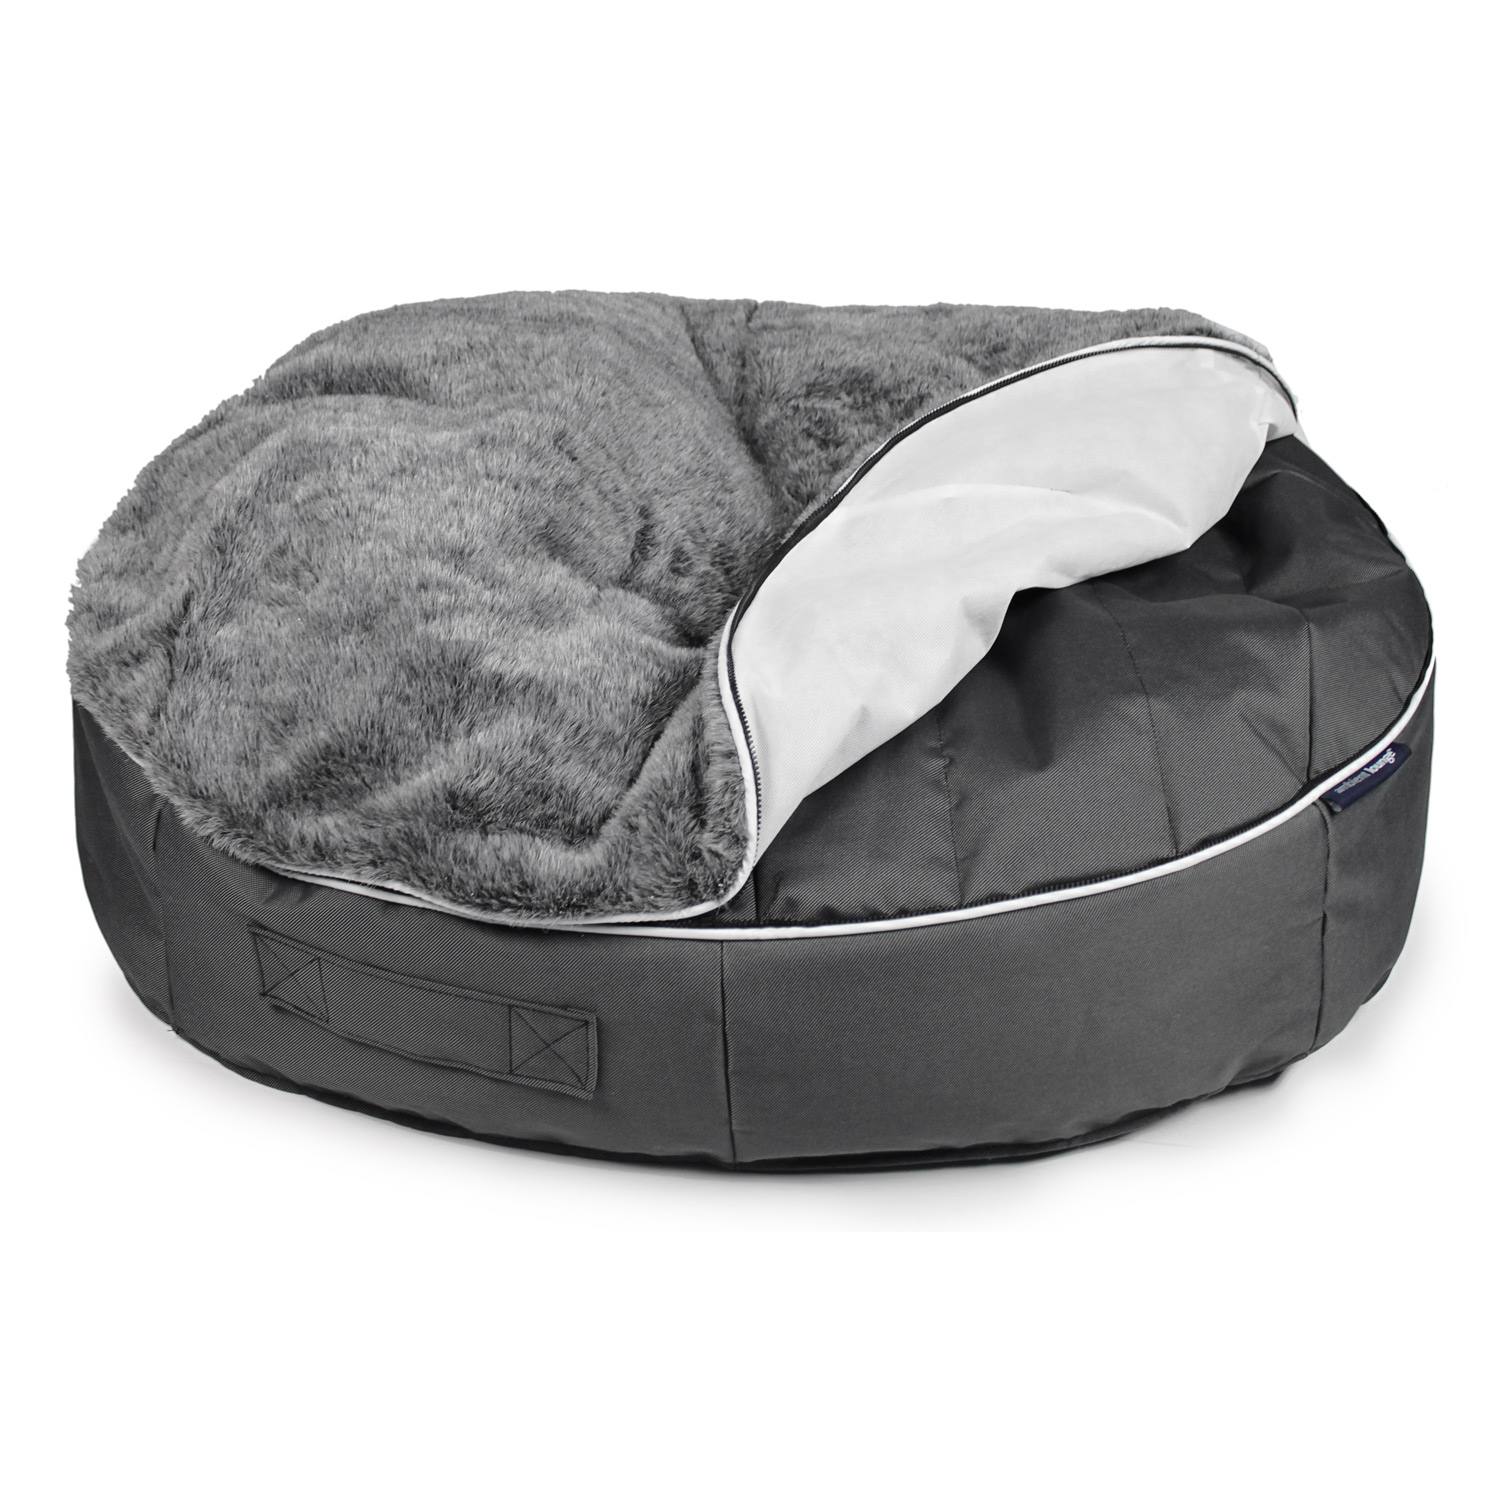 bean bag chair bed office for sale pet beds dog designer bags large spare